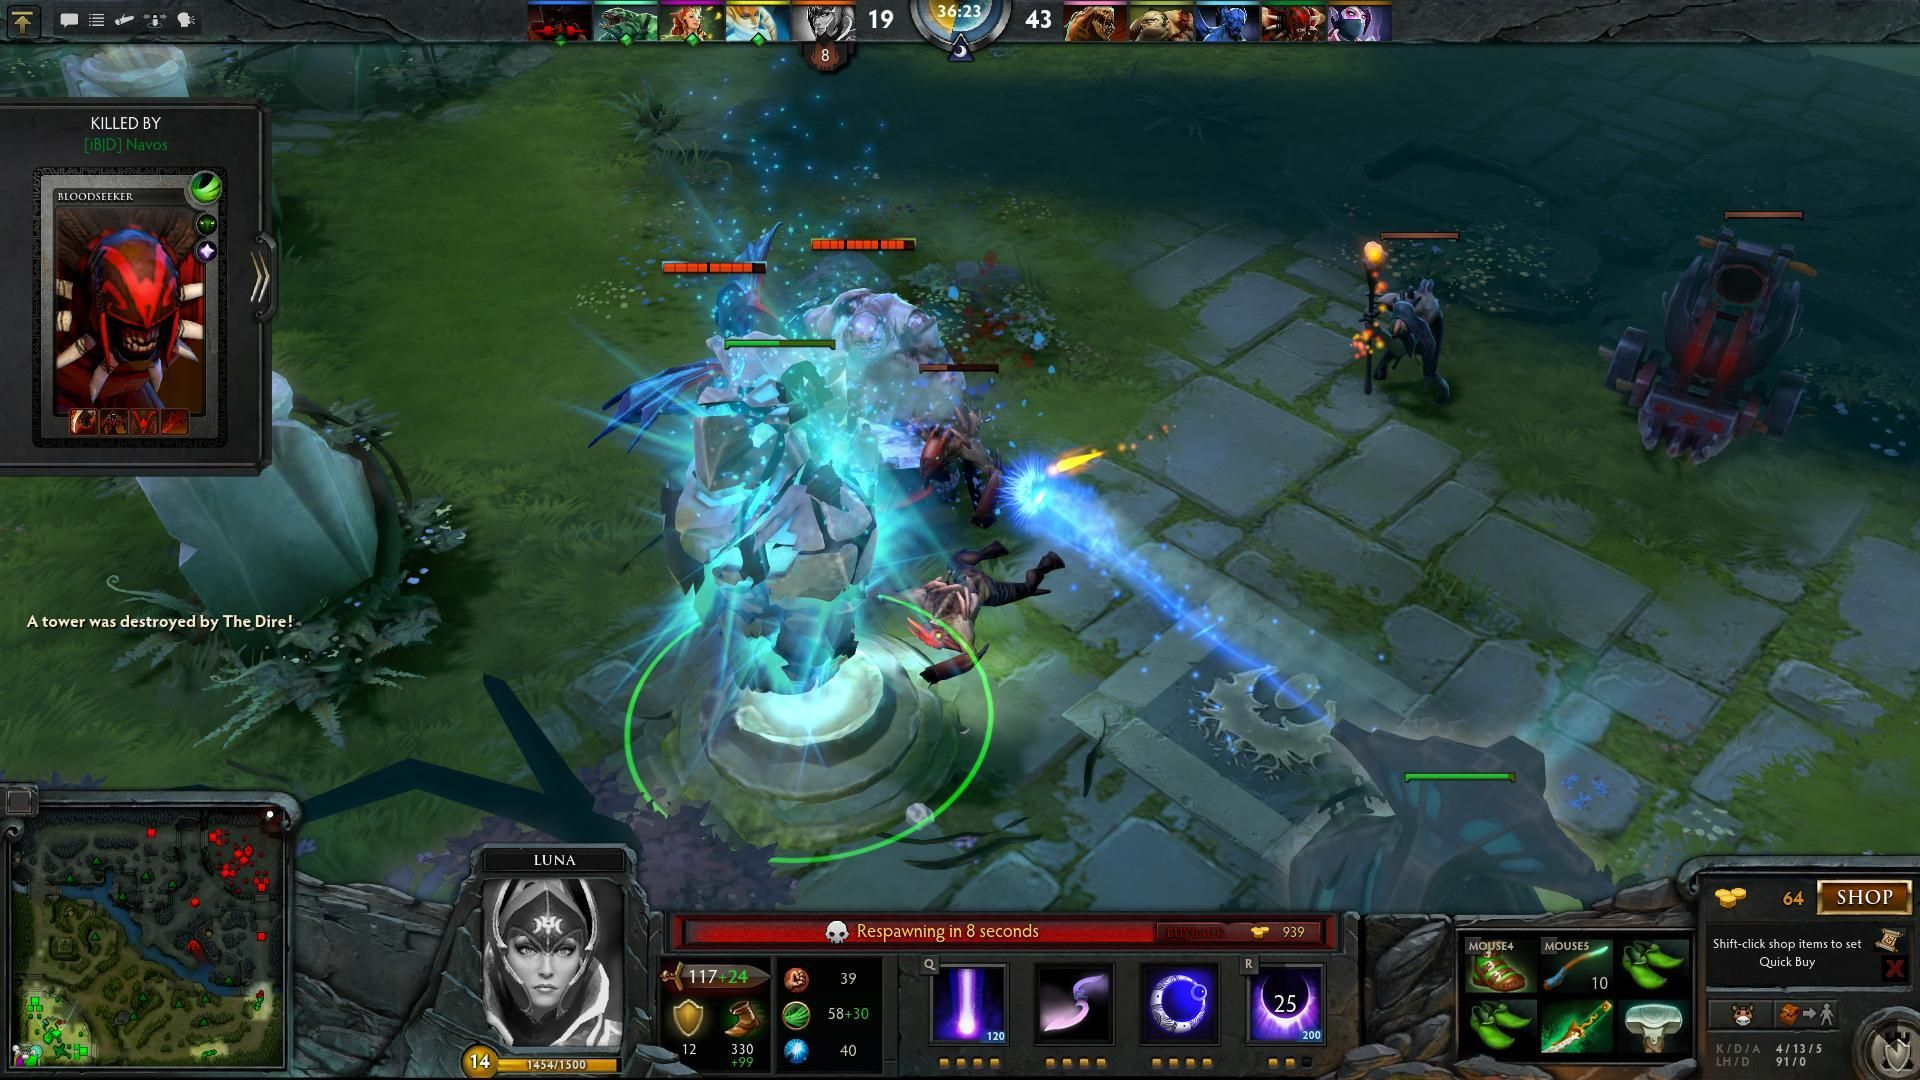 Dota 2: Dota 2 Surpasses Skyrim's Record For Most Concurrent